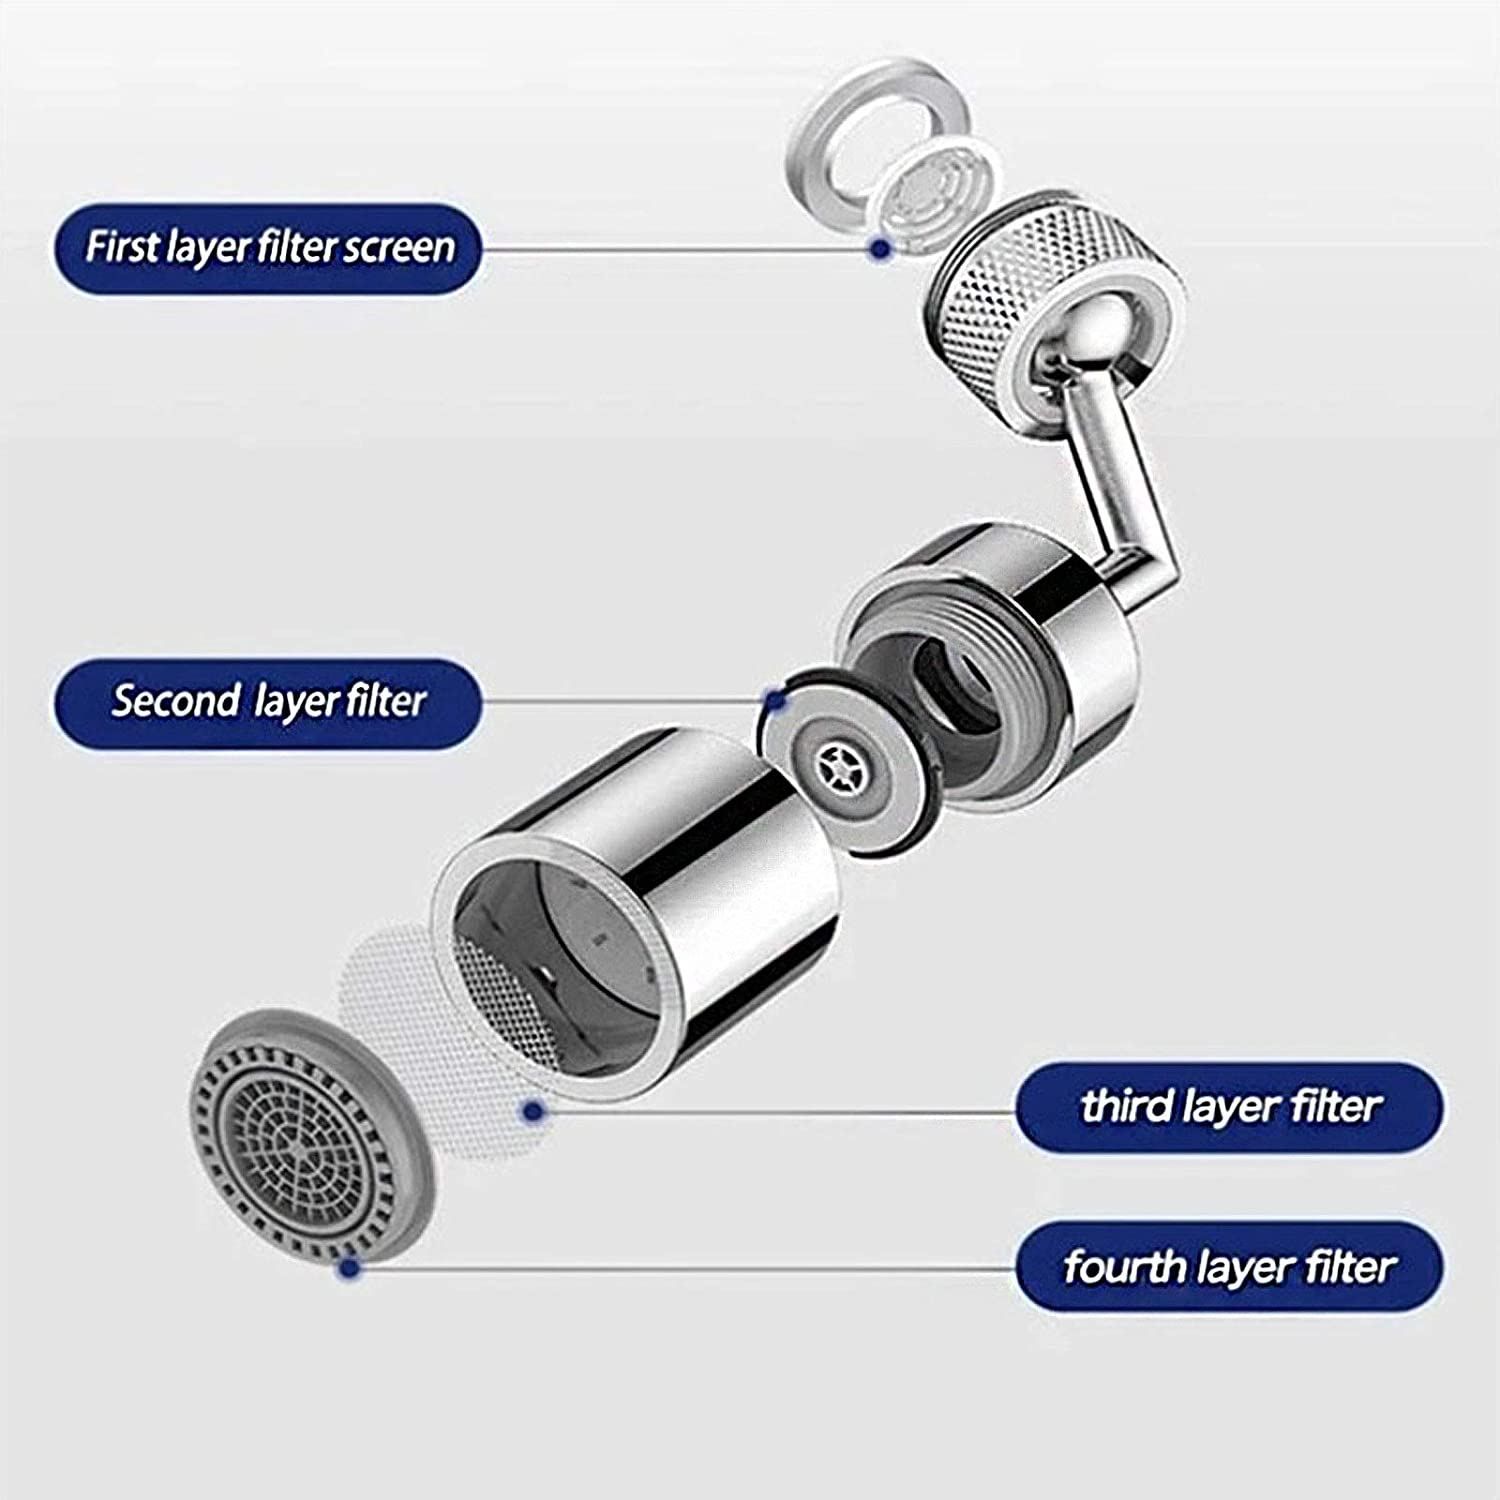 Universal Splash Faucet Dual-Function Swive Filter Big Angle Large Flow Aerator 720/° Rotatable Faucet Sprayer Head with Durable Copper /& ABS,Anti-Splash,Oxygen-Enriched Foam,4 Layer Net 1pcs